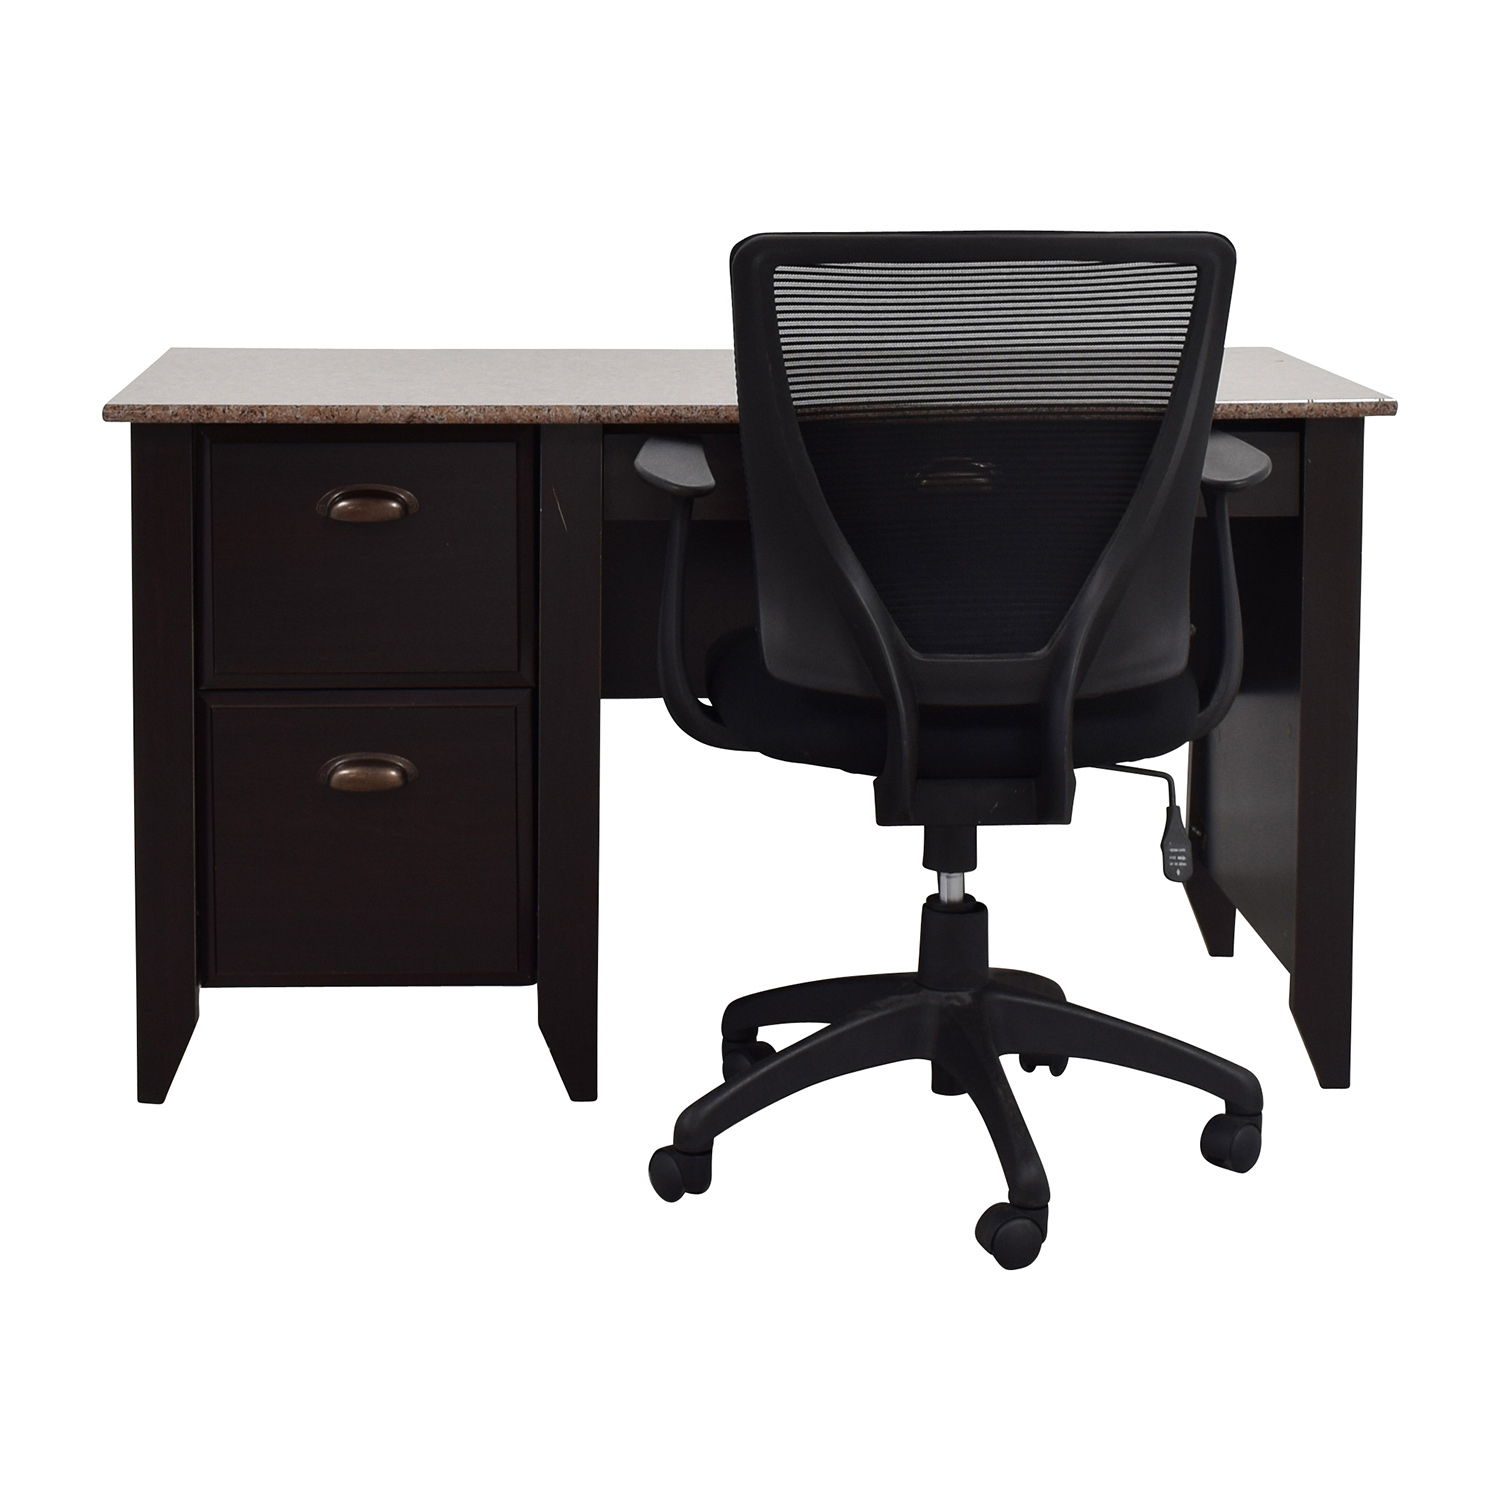 buy Computer Table with Office Chair online